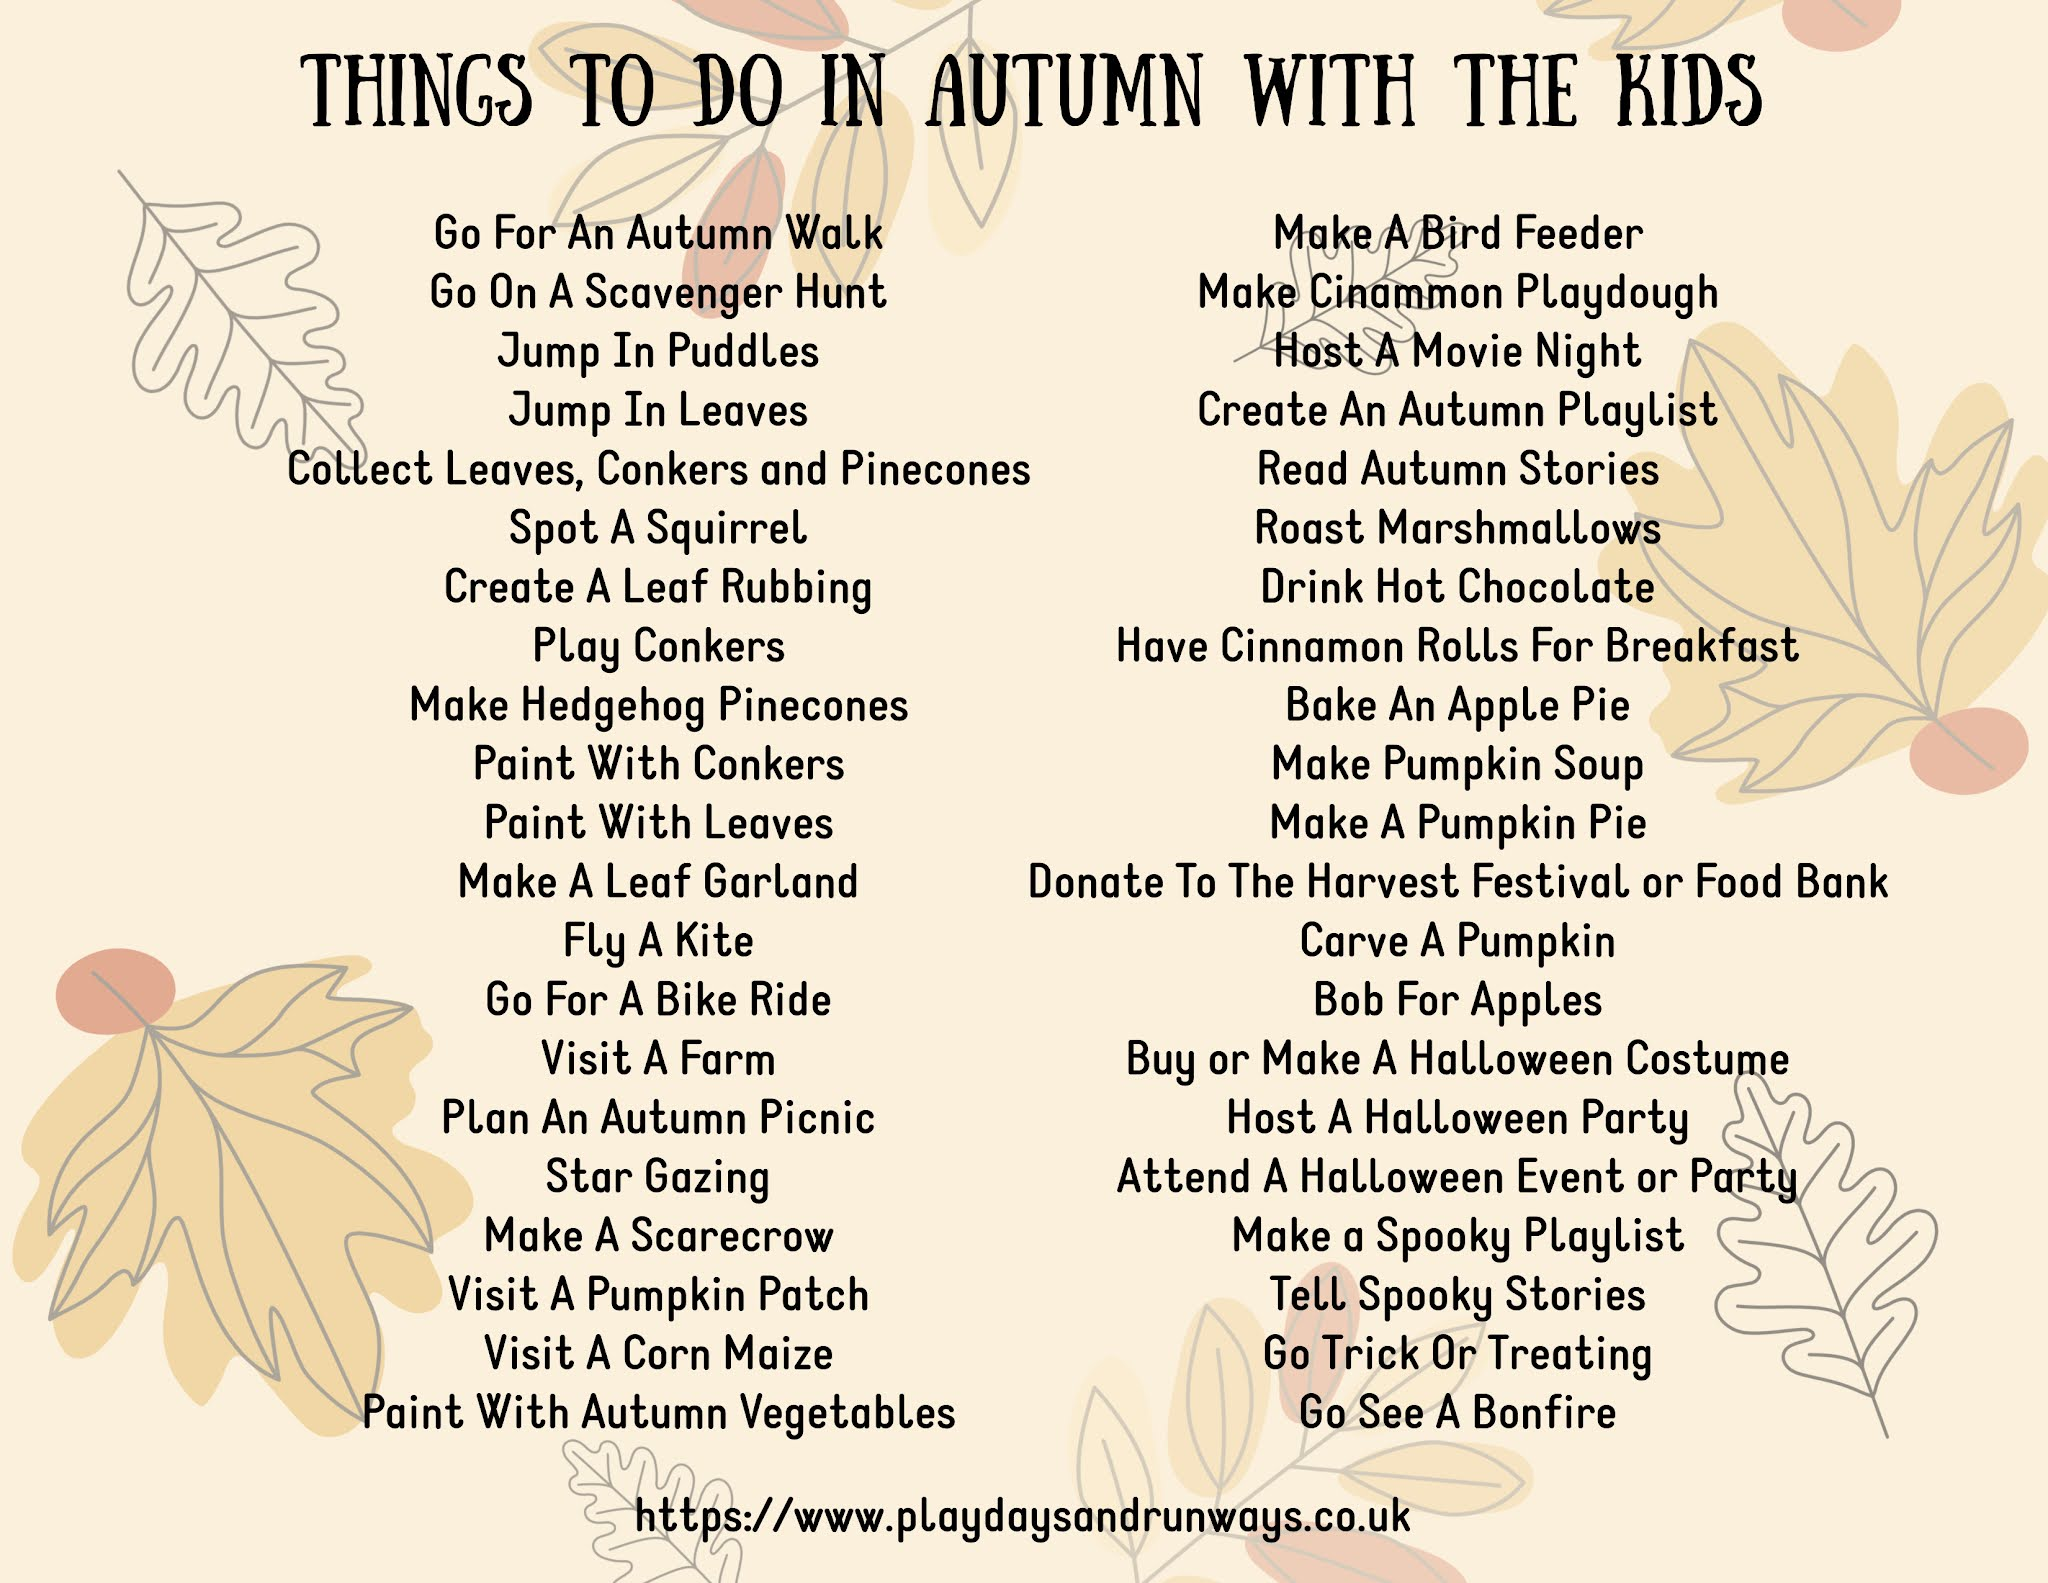 things to do with the kids in Autumn